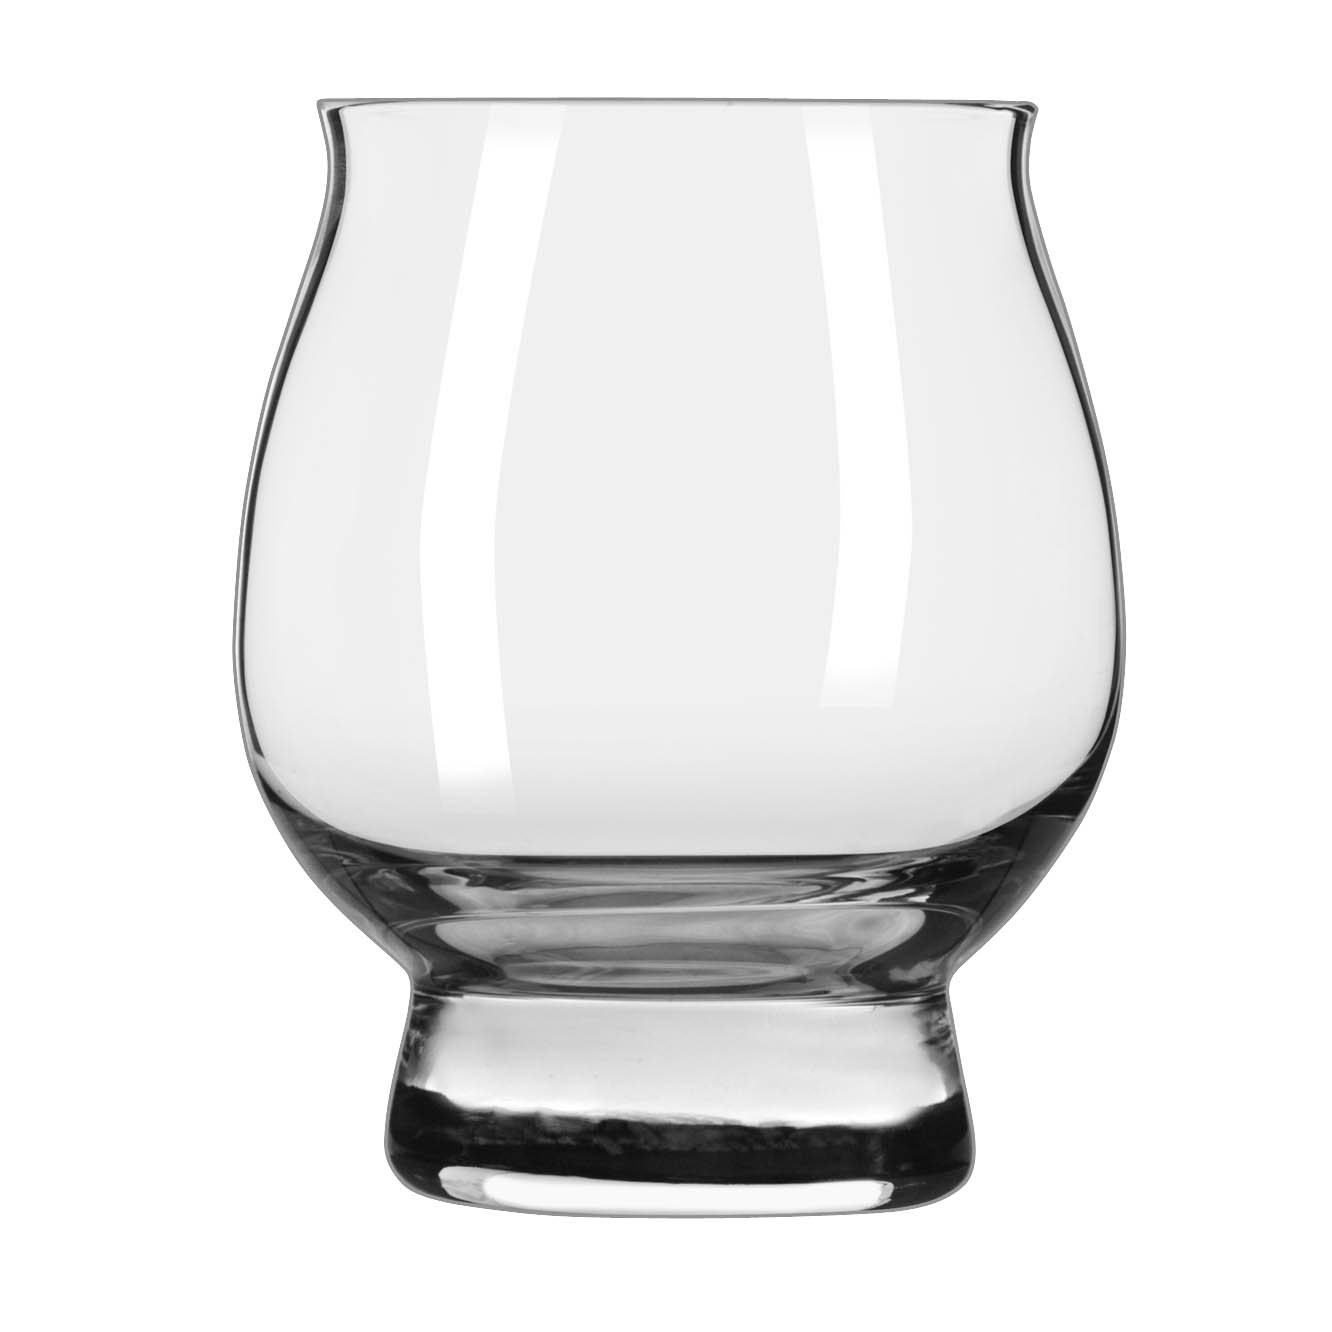 Libbey Glass 9196/L001A glass, old fashioned / rocks